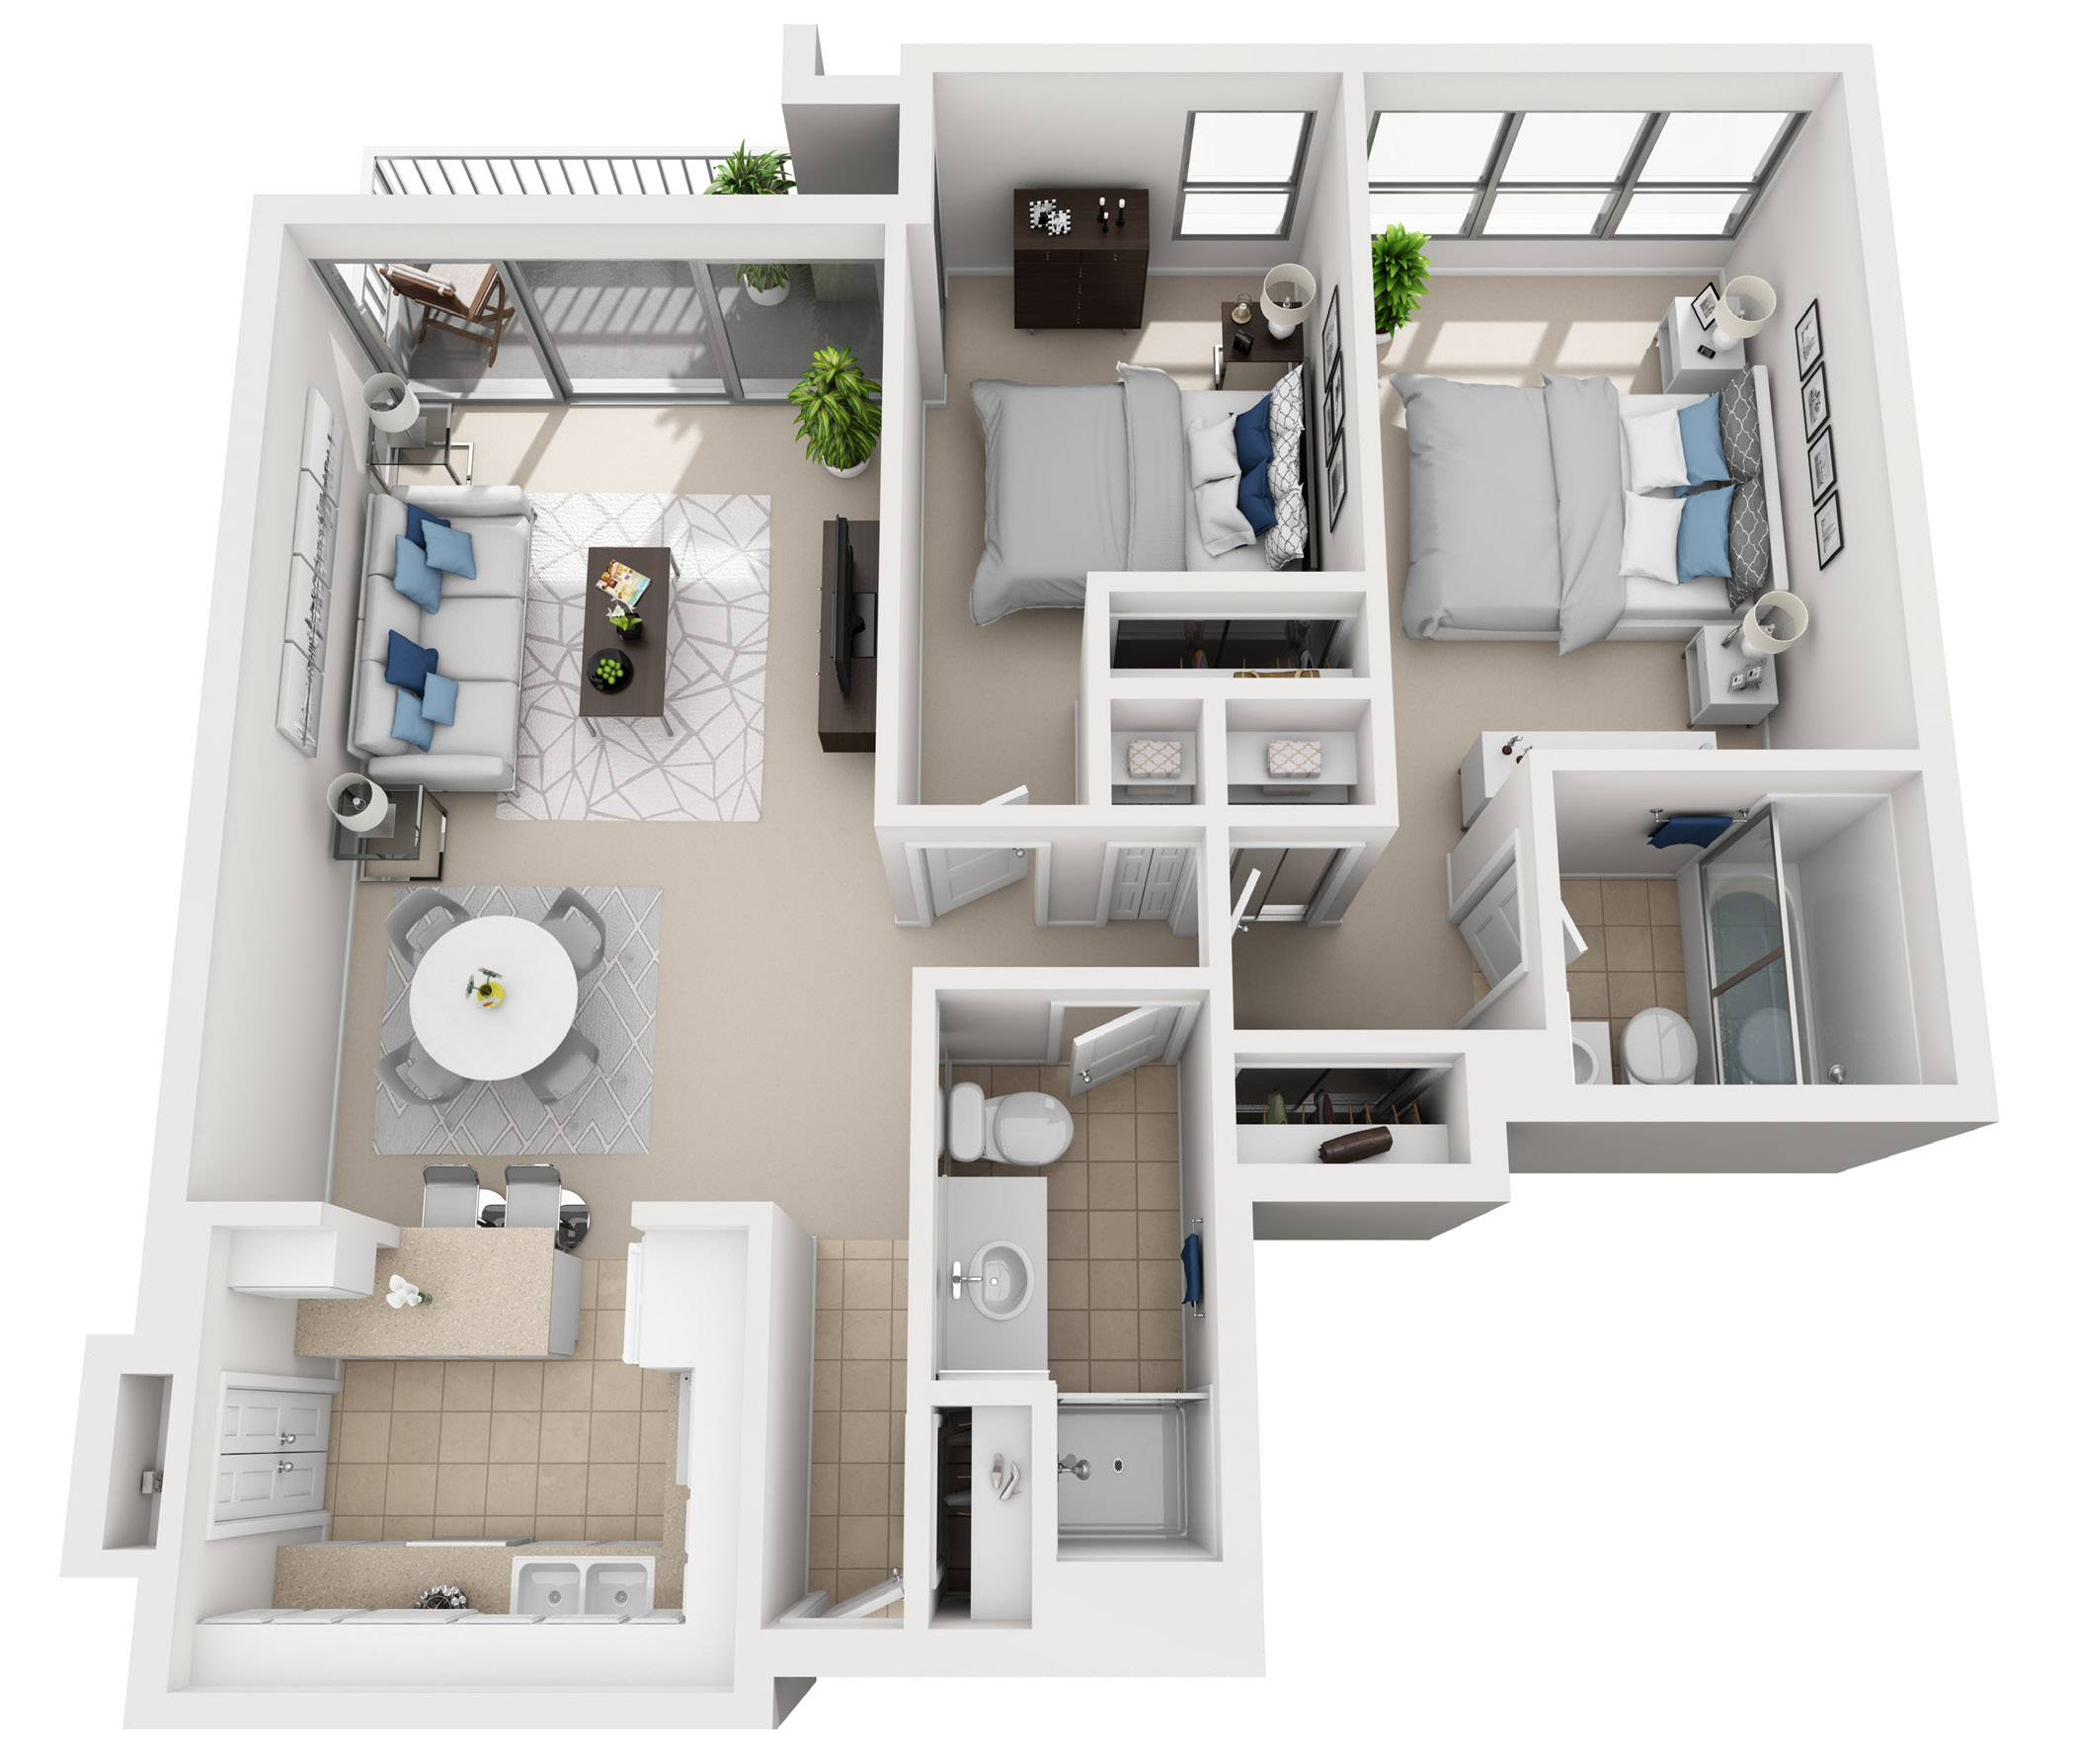 Model A - Two bedroom apartment floor plan at The Shores